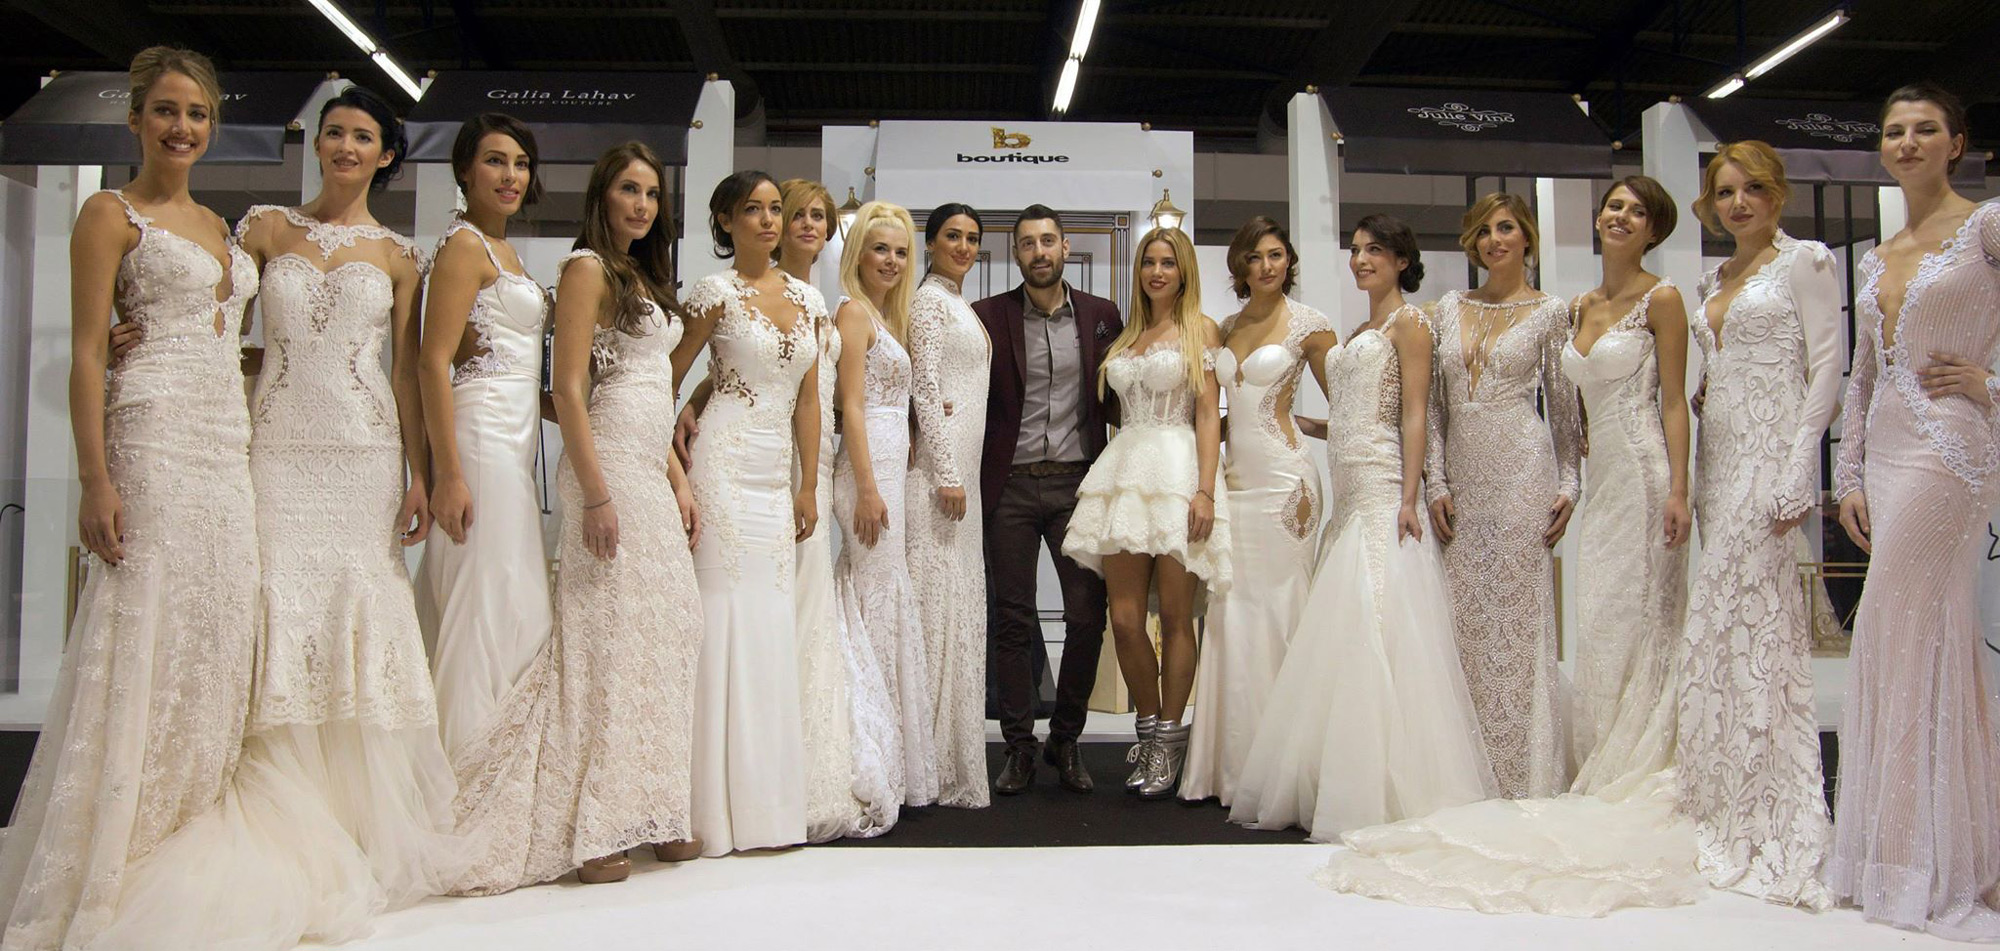 b boutique, Catwalk 2015